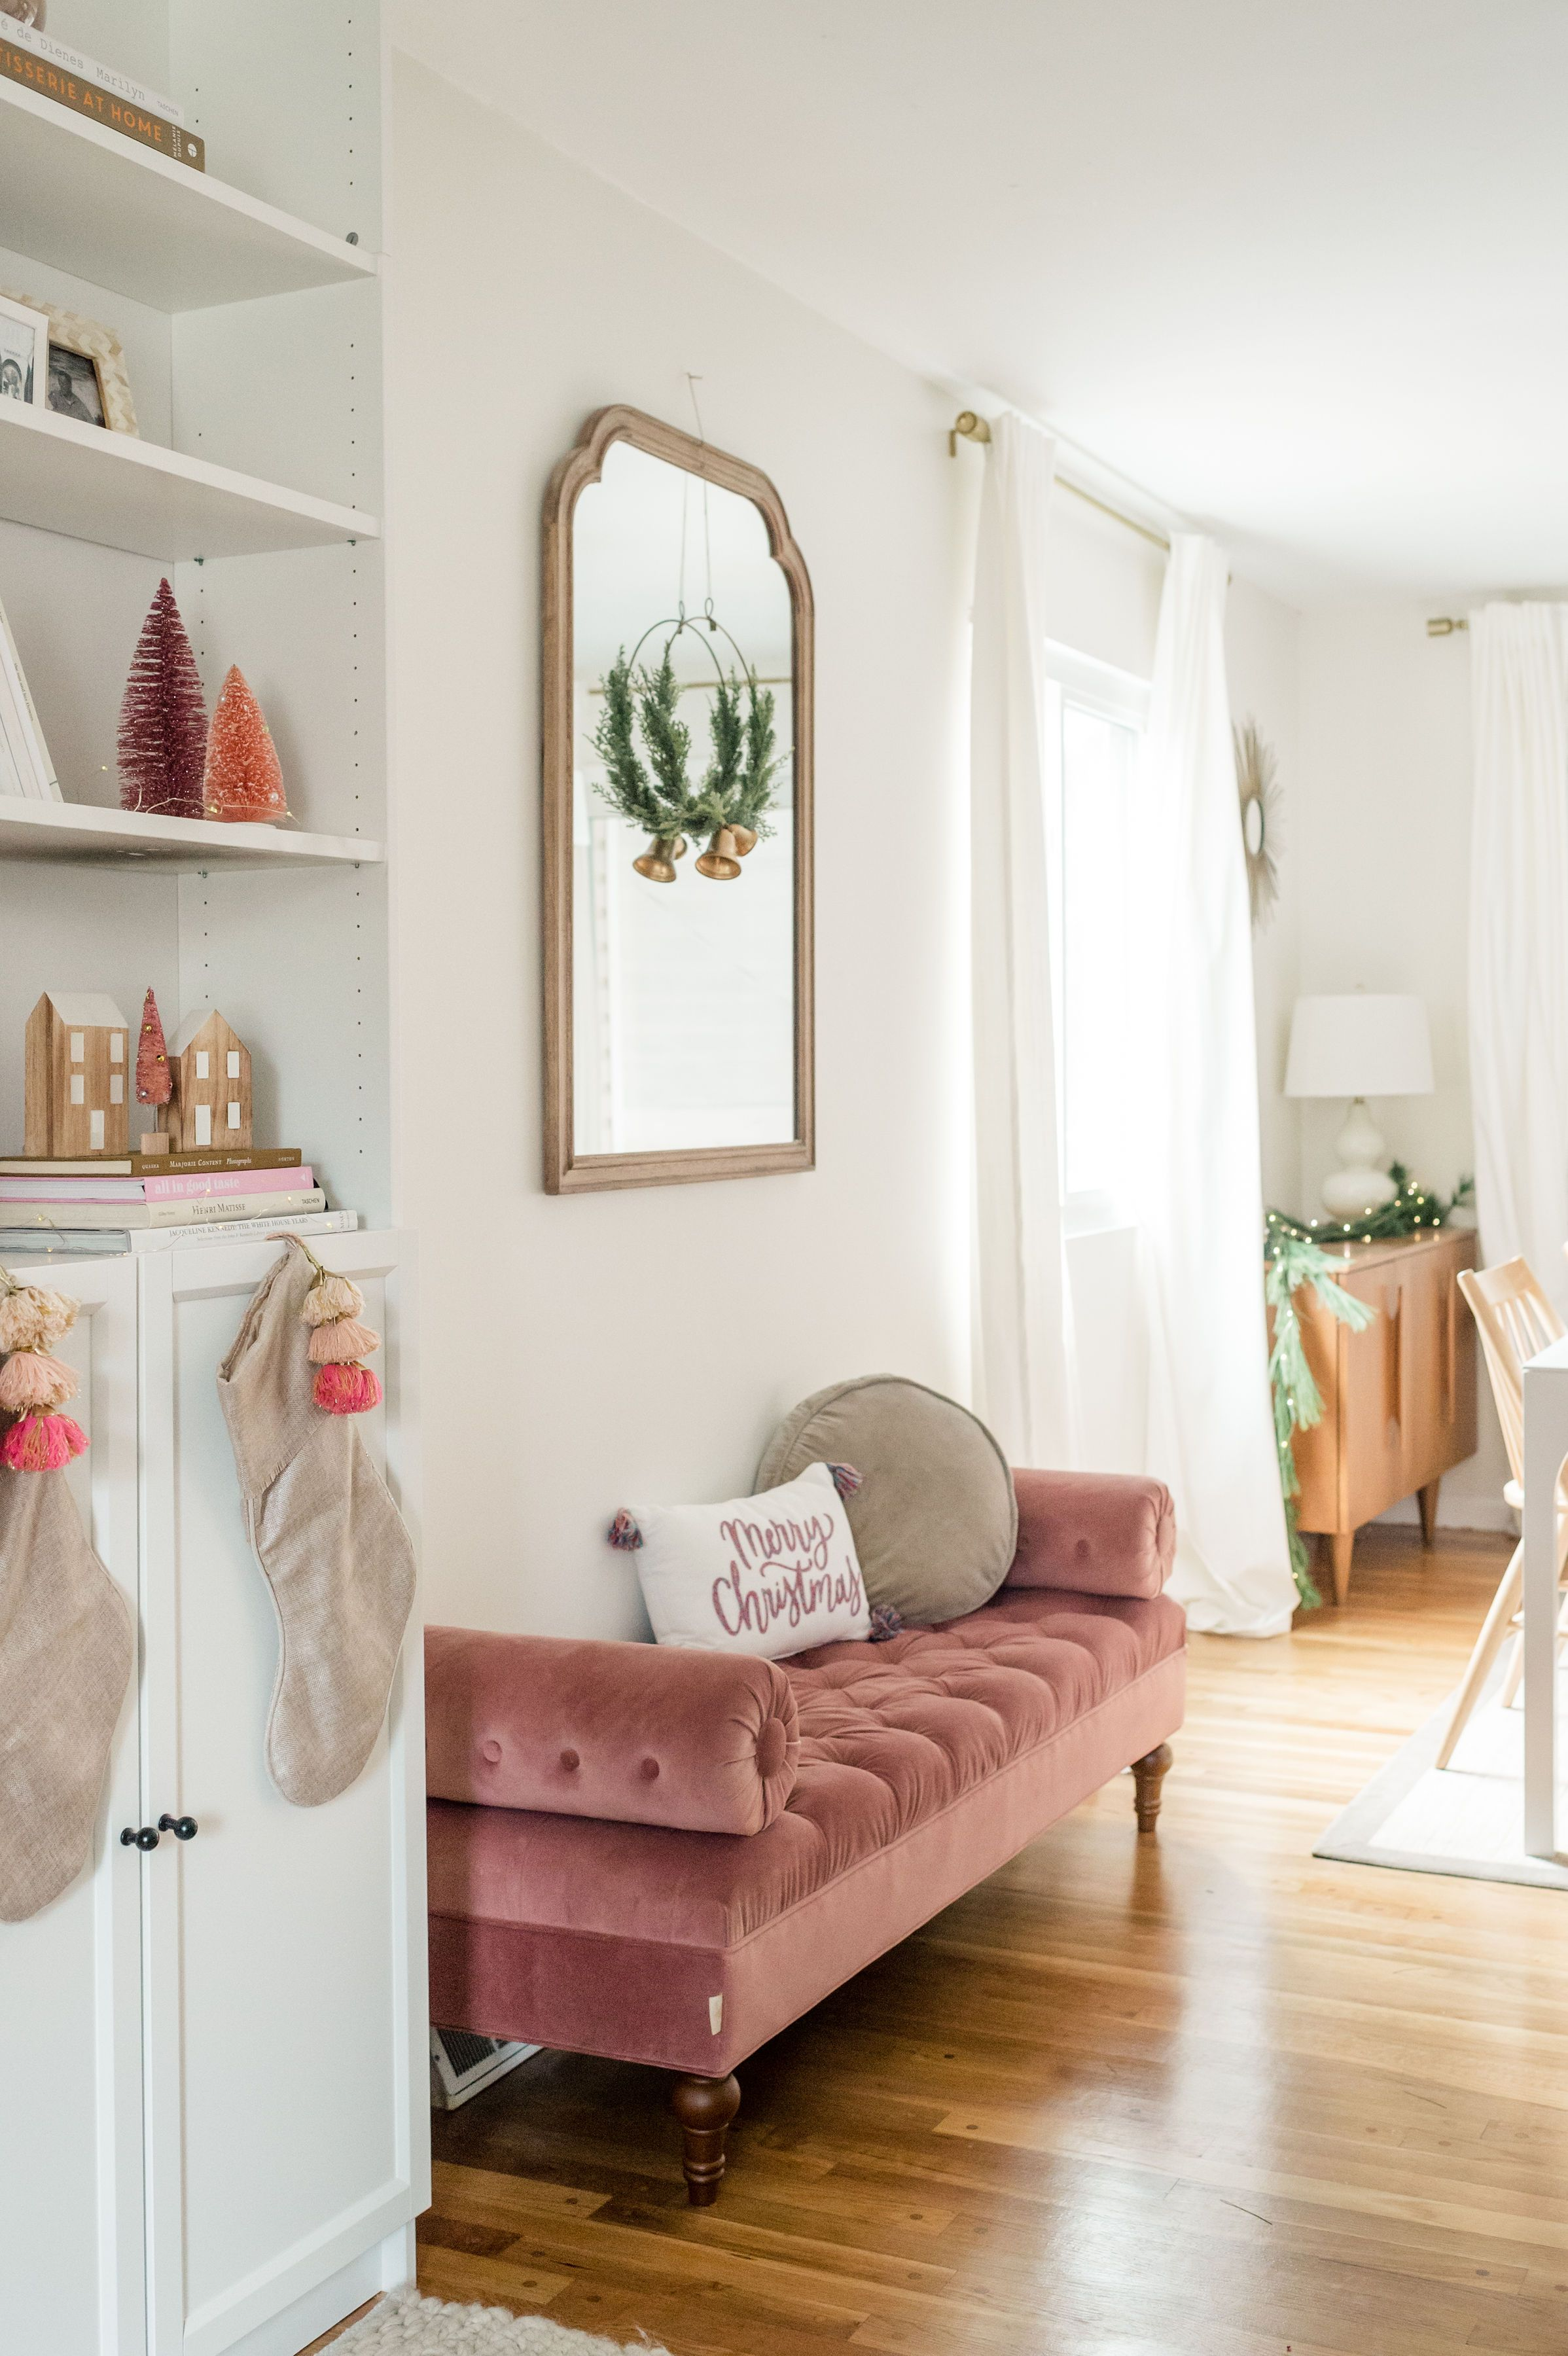 Our holiday home tour also pin by the inspired room on bedroom decor ideas in rh pinterest